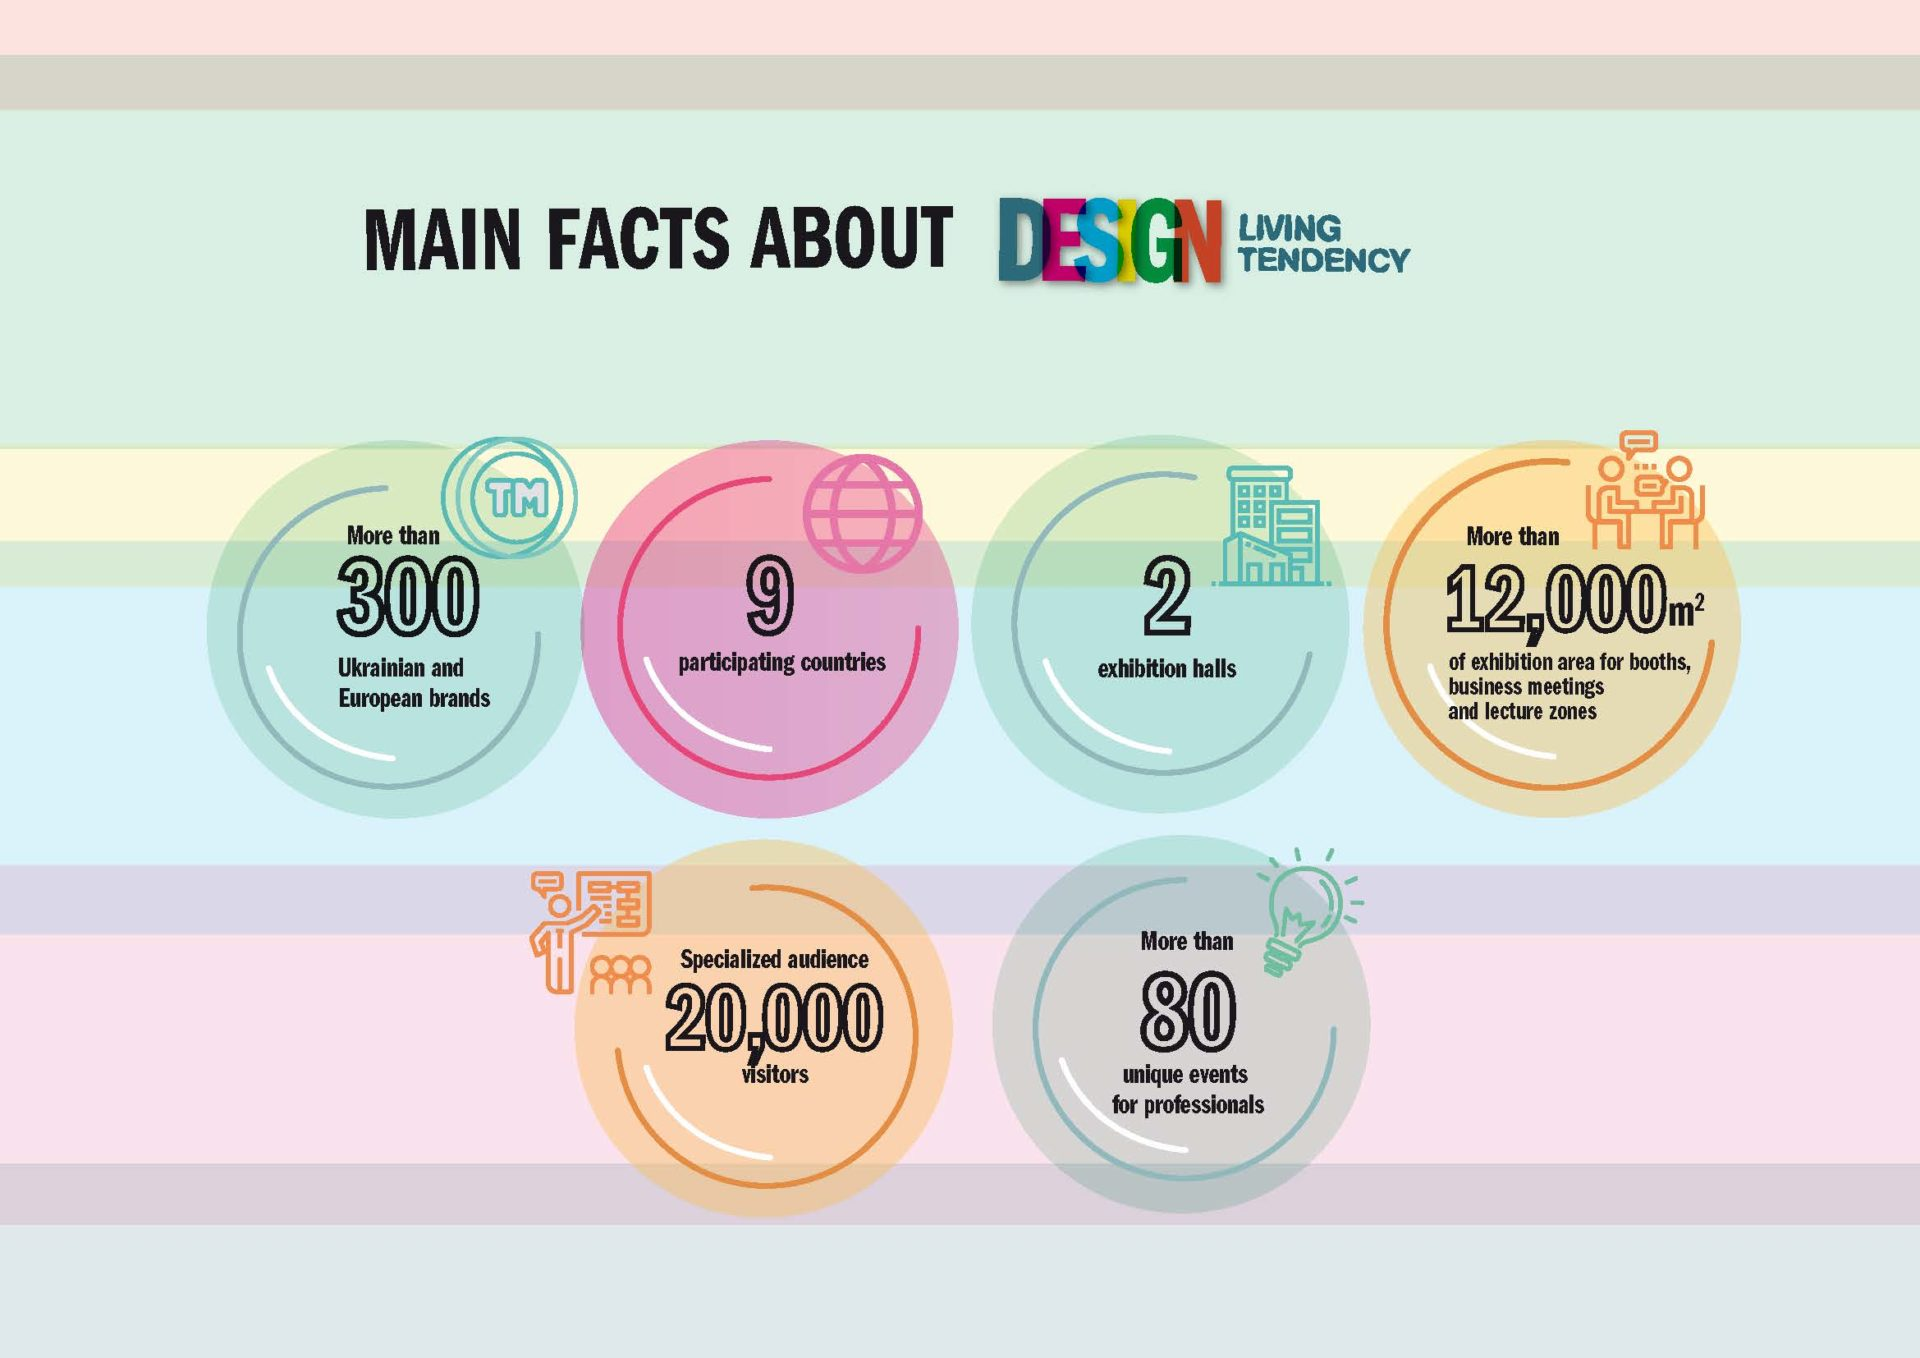 infografic engl 2 - Everything you need to know about Design Living Tendency 2019